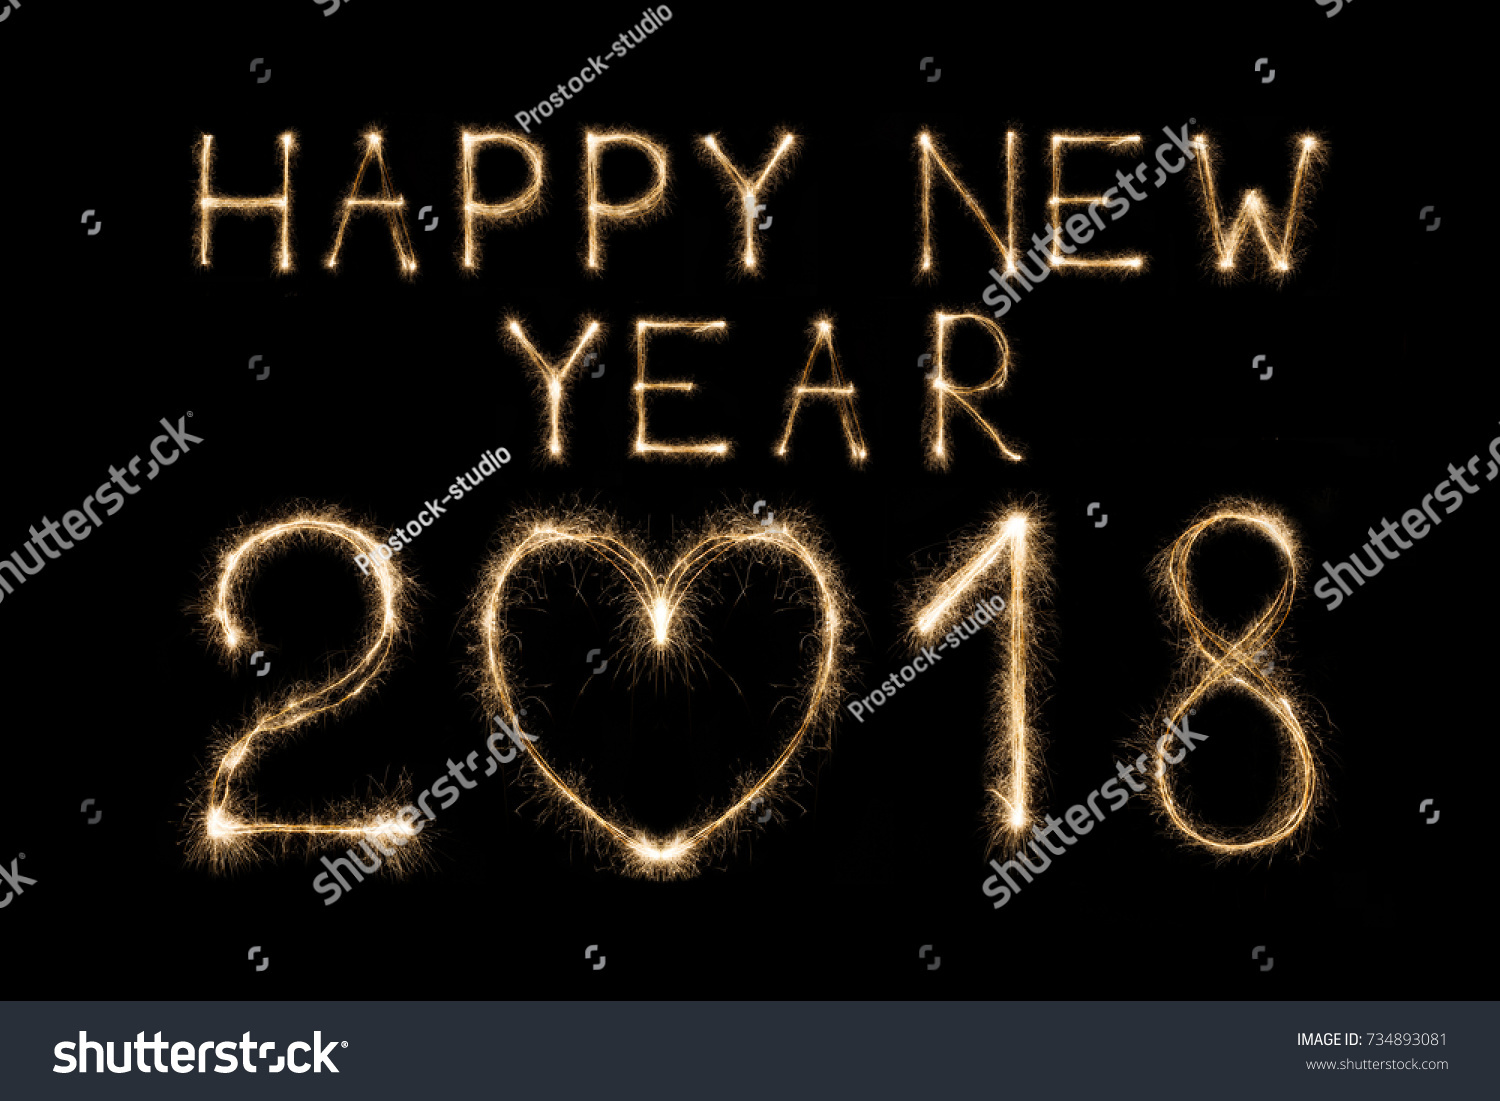 happy 2018 new year written with sparkler fireworks on black background with heart shape love